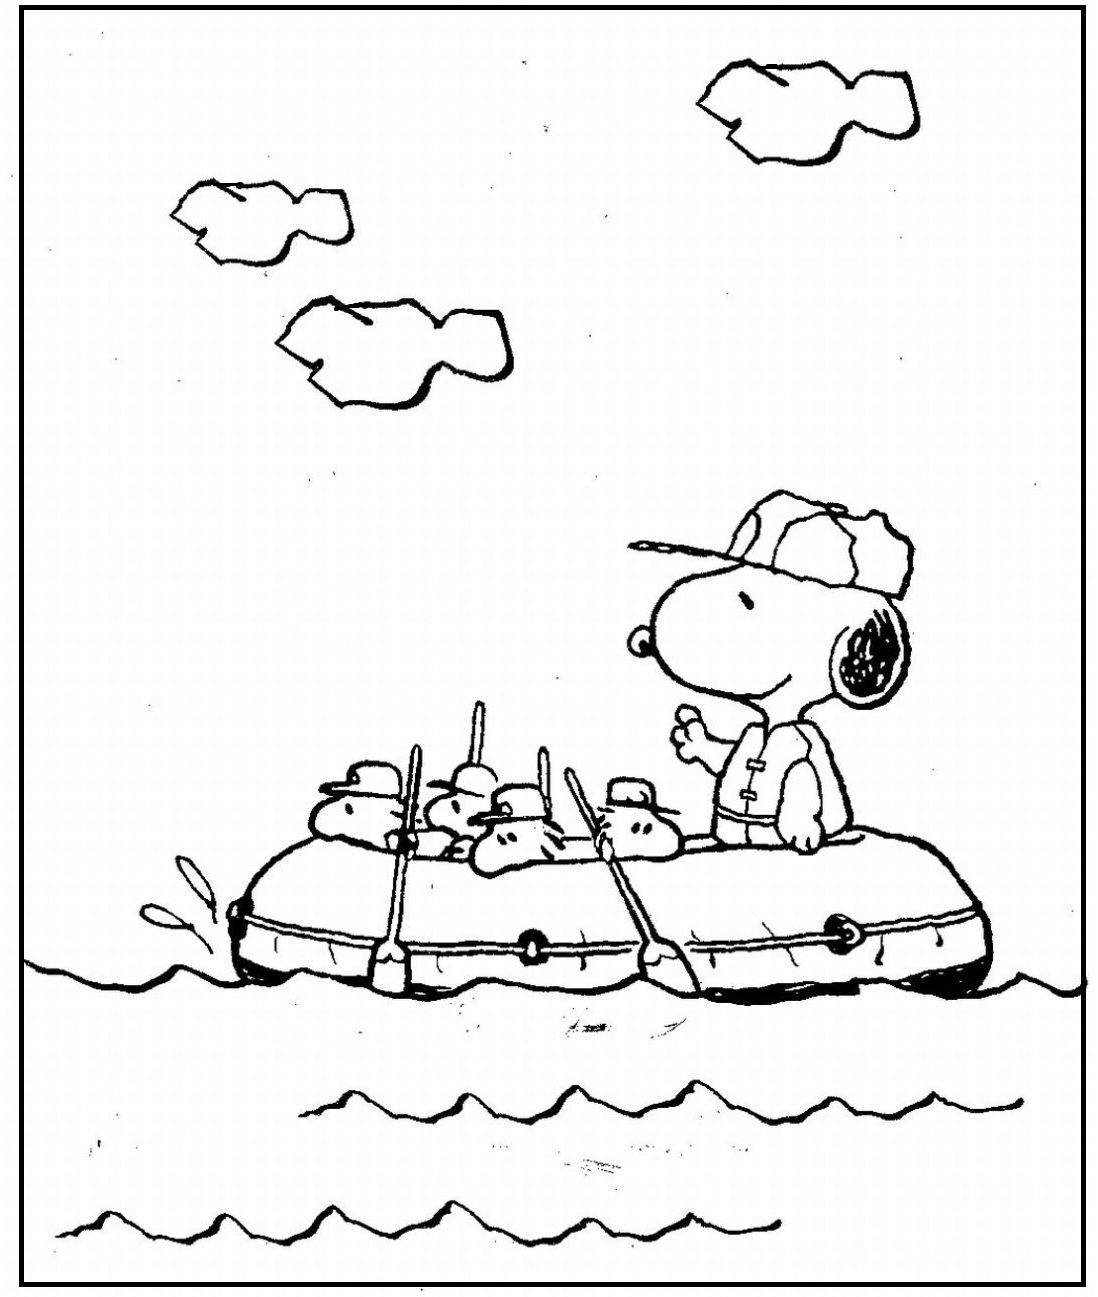 Snoopy And Woodstock Rafting coloring picture for kids